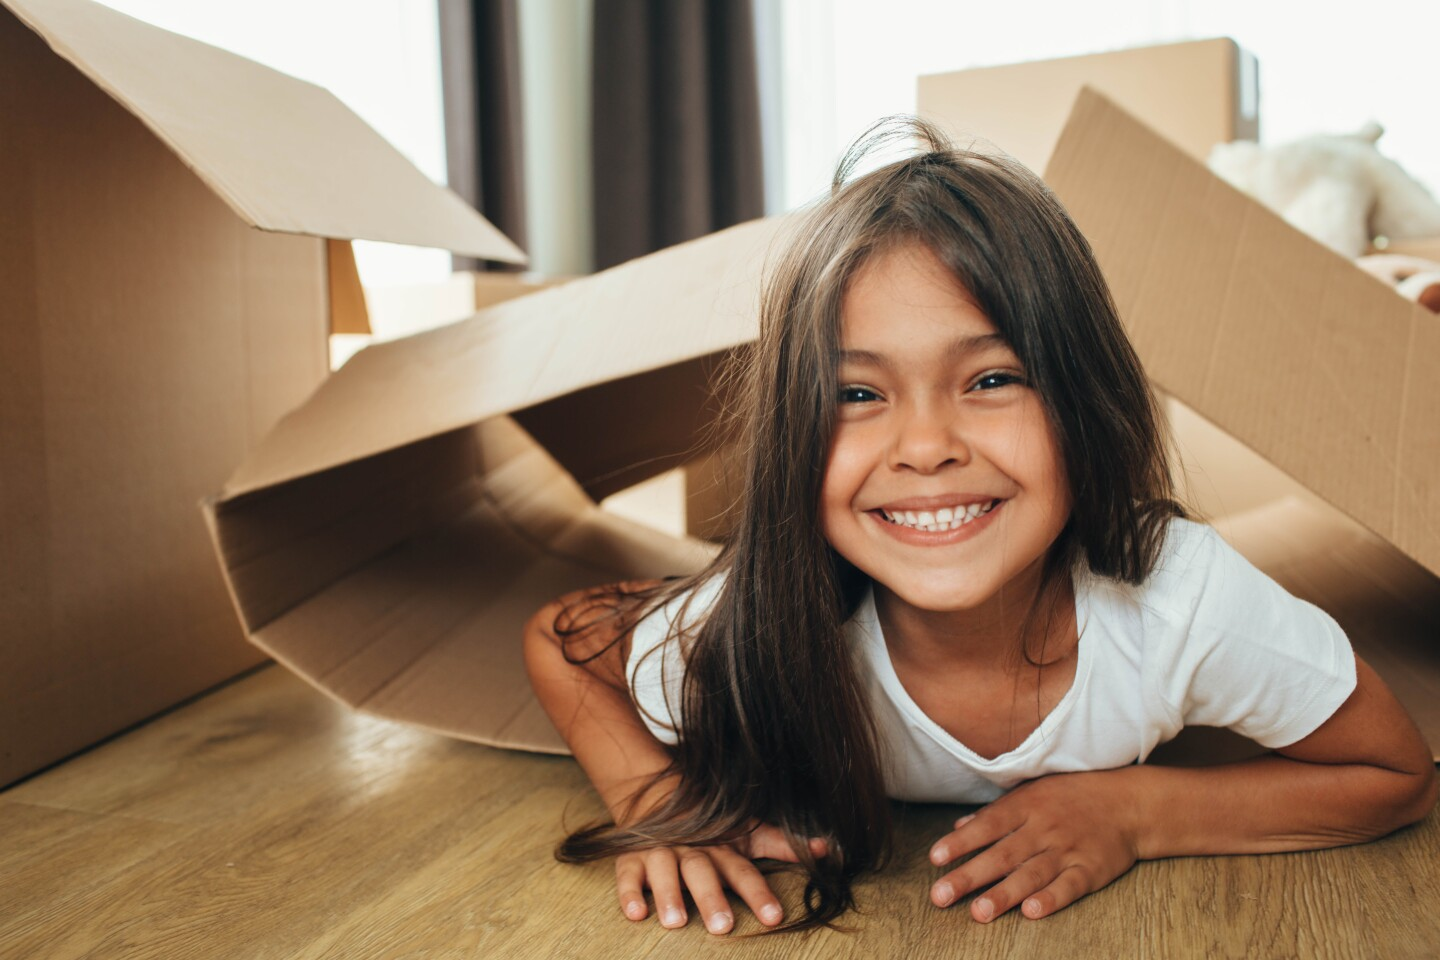 little girl playing with Cardboard Box, into her new house.